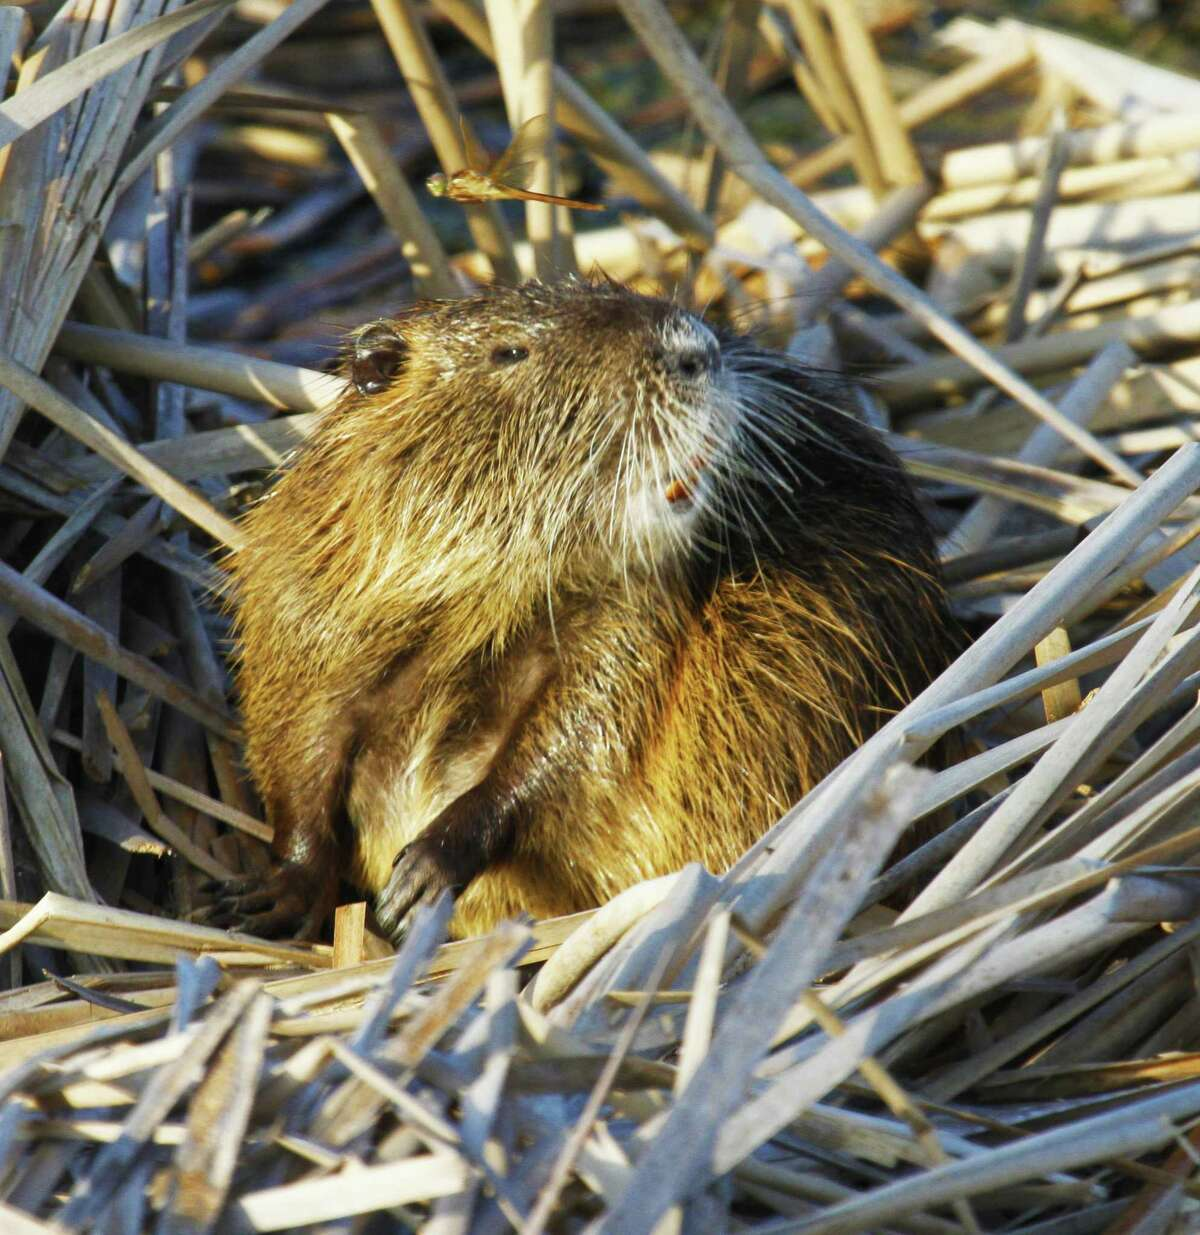 Intentionally released in Texas and Louisiana in the 1930s, South American nutria damage wetlands and levees.